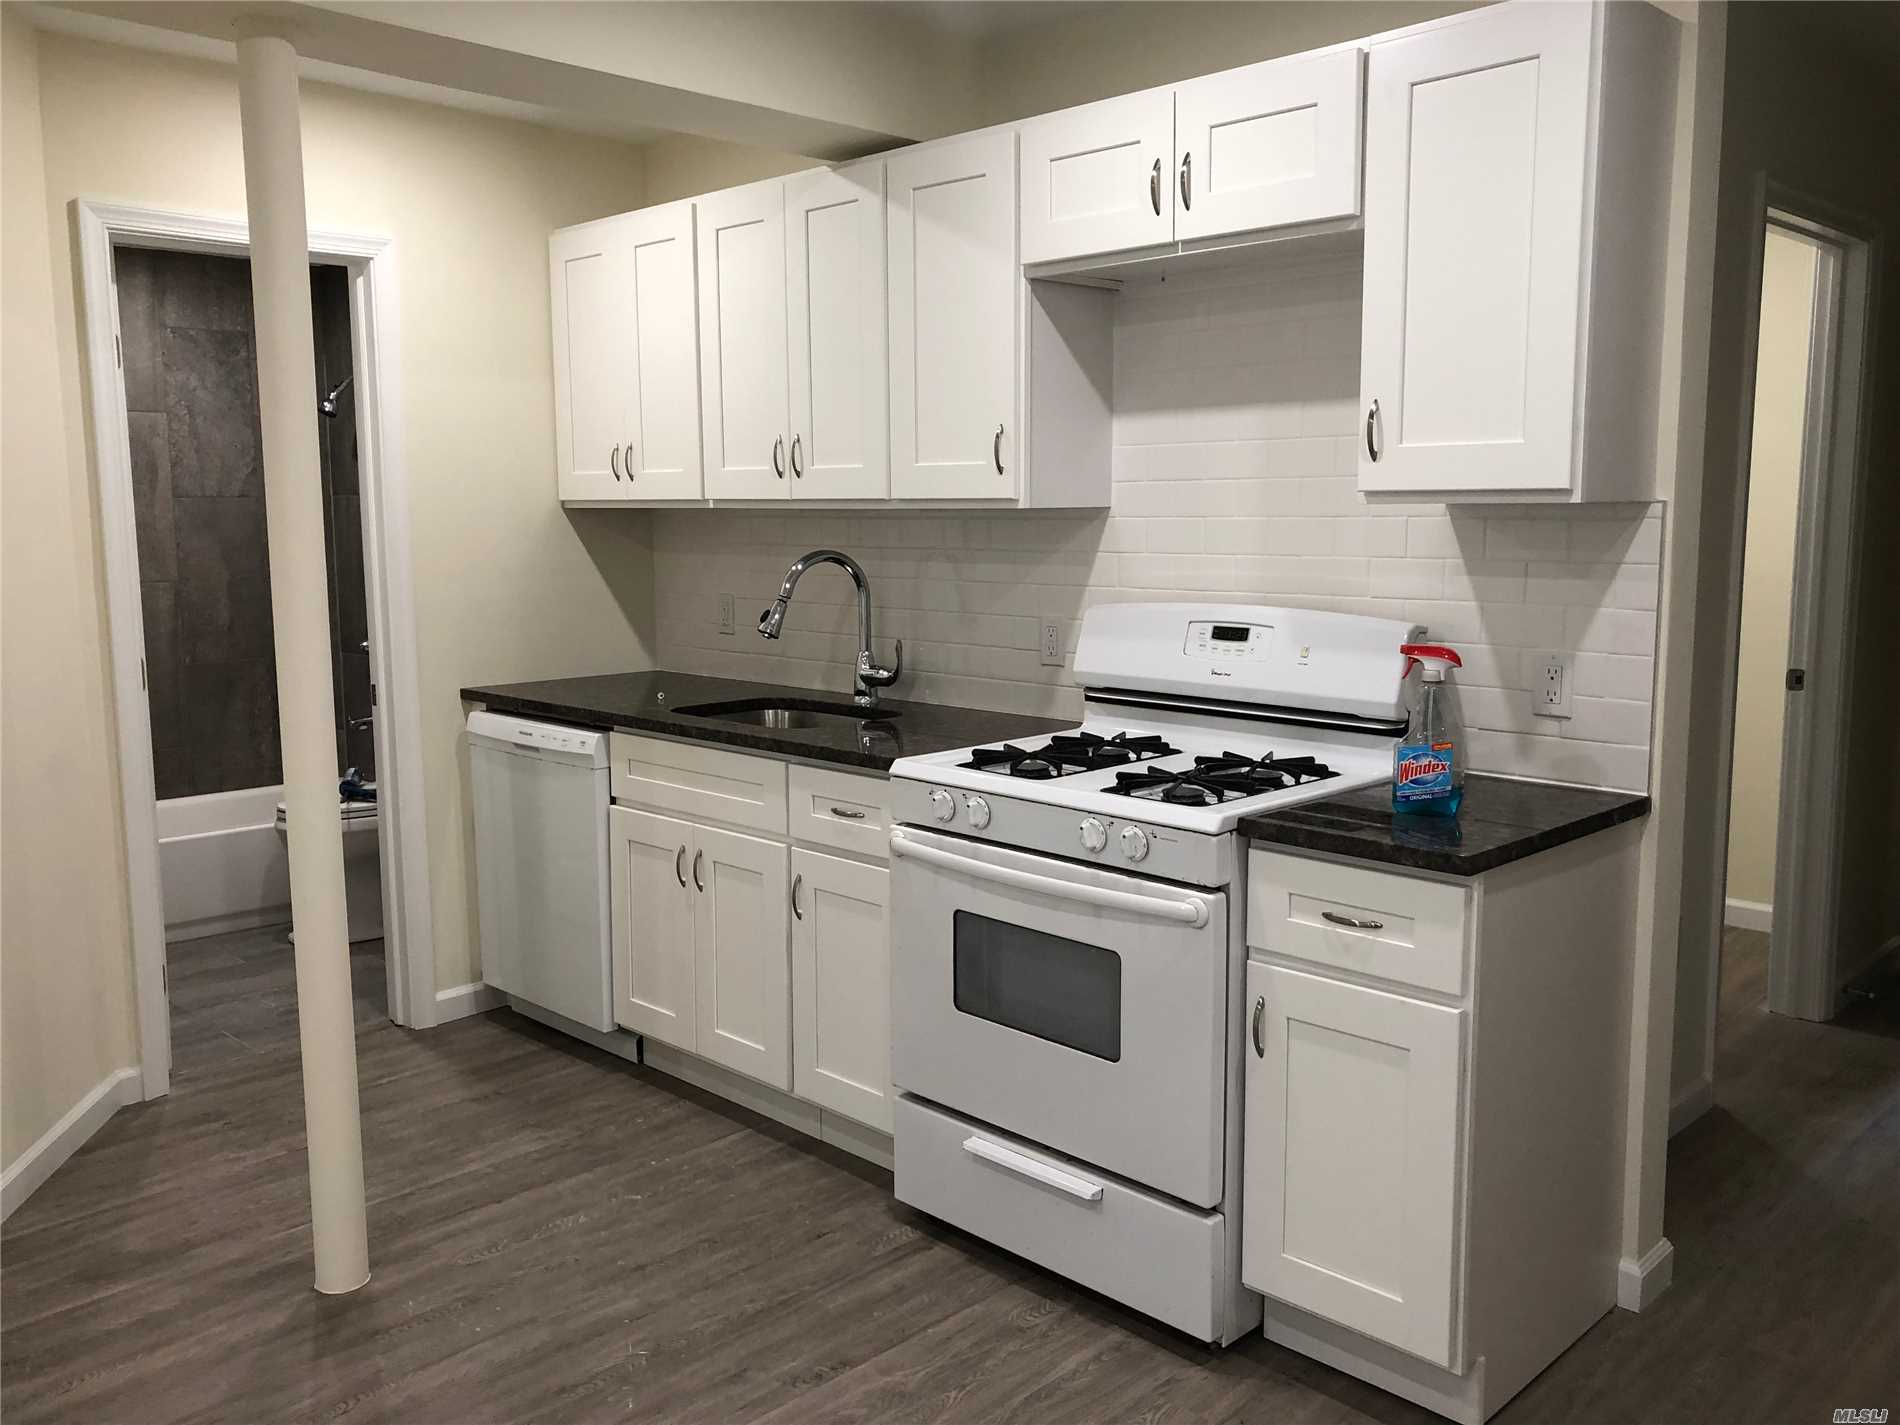 Beautiful Upper Ditmars/Astoria Heights location. Gut renovated new 2 bedroom apartment with 2 full bathrooms and access to private backyard. Lots of closets and storage space. Completely renovated with newly kitchen, appliances including dishwasher.